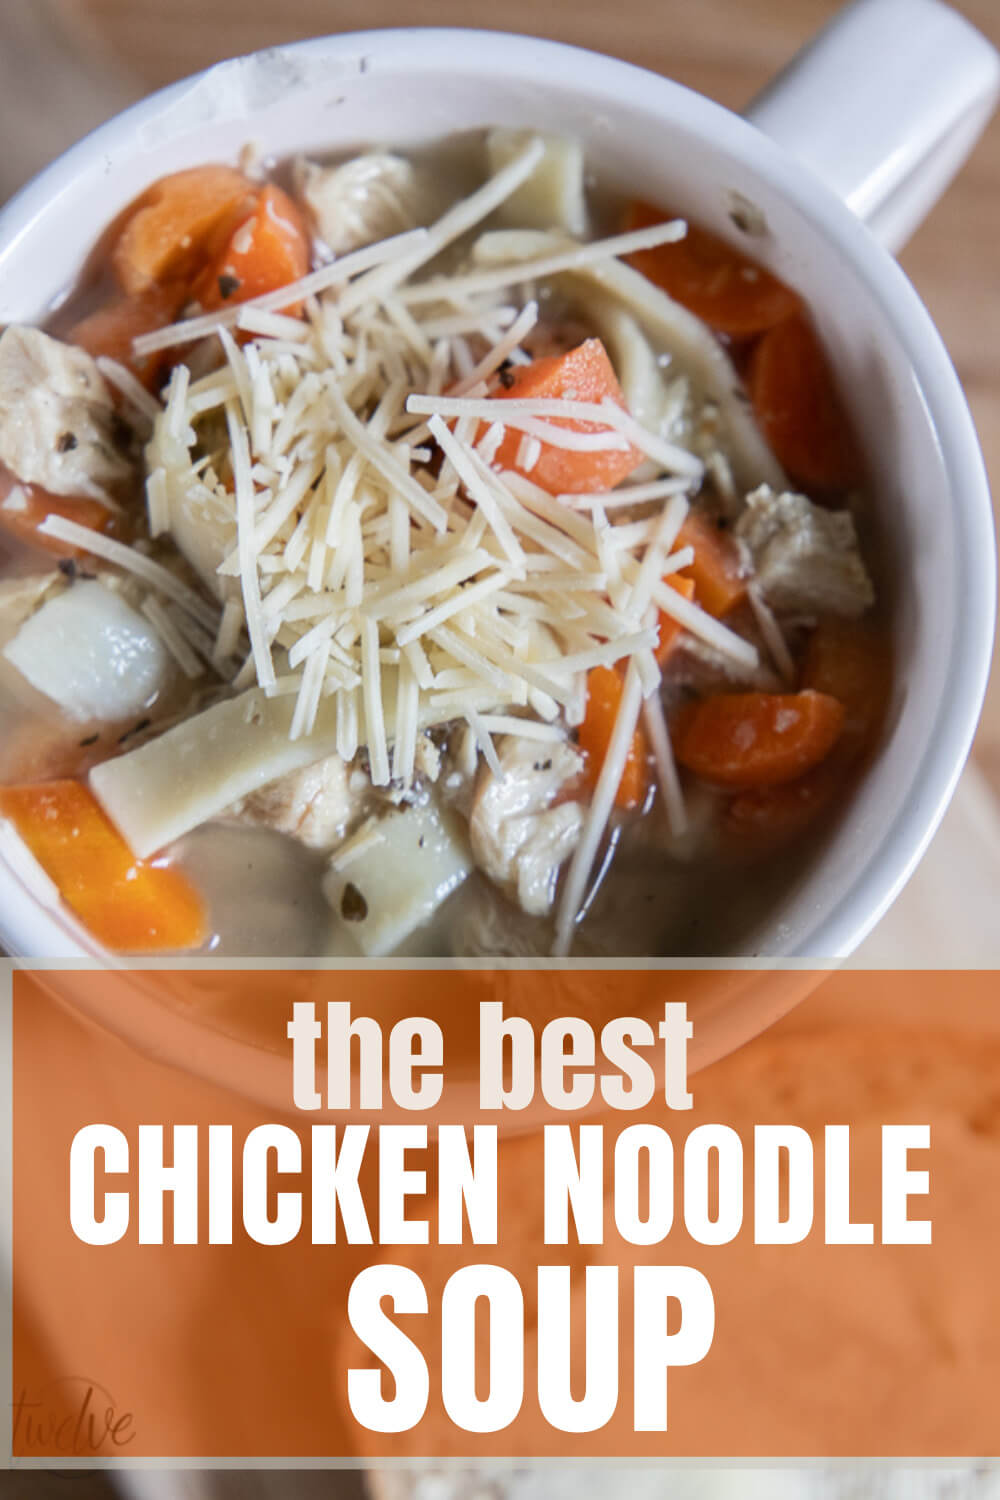 Amazing homemade chicken noodle soup recipe that is super easy to make and tastes so amazing!